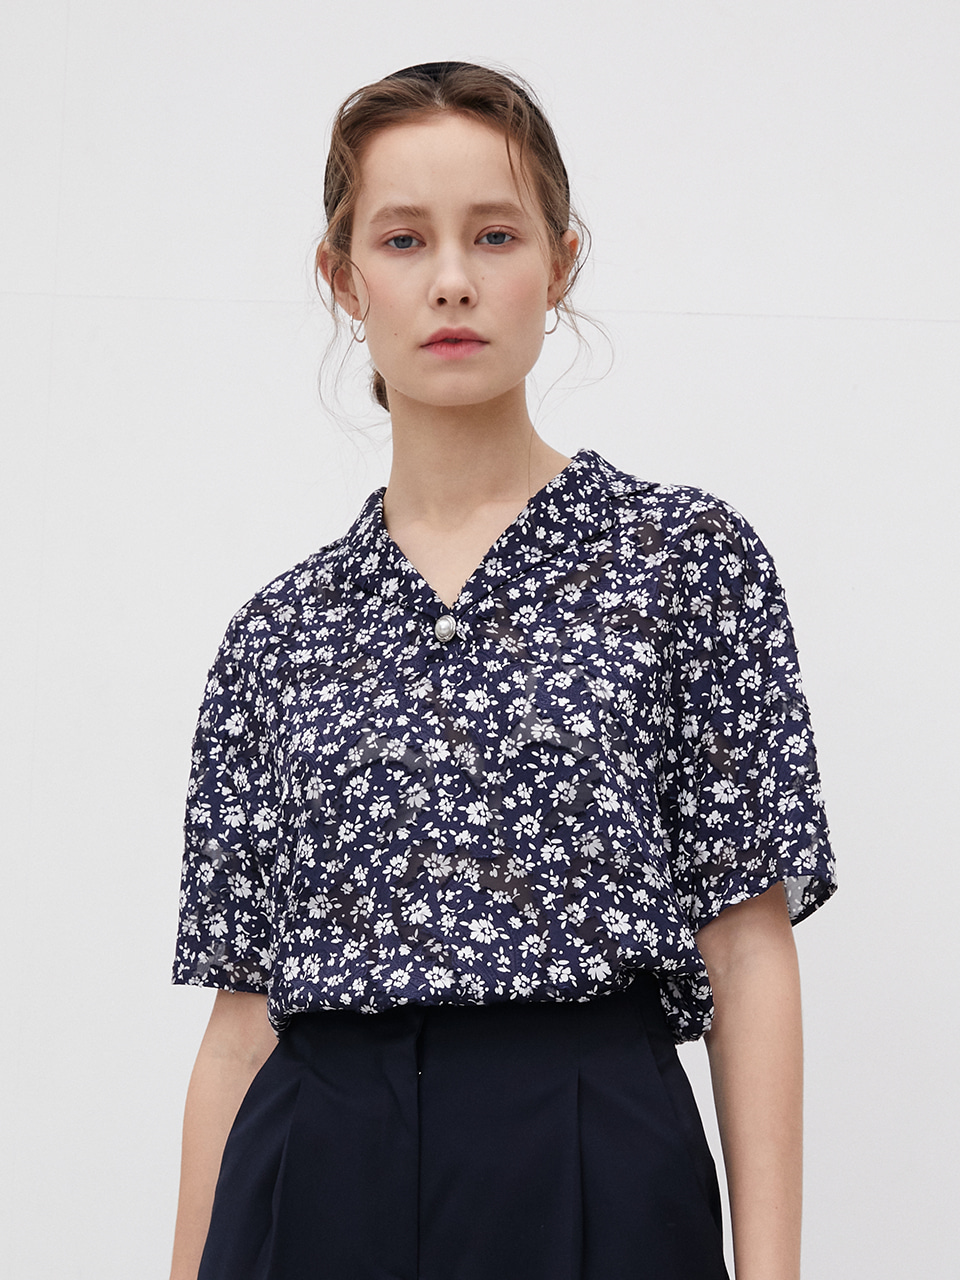 3R Flower See-through Lace Blouse